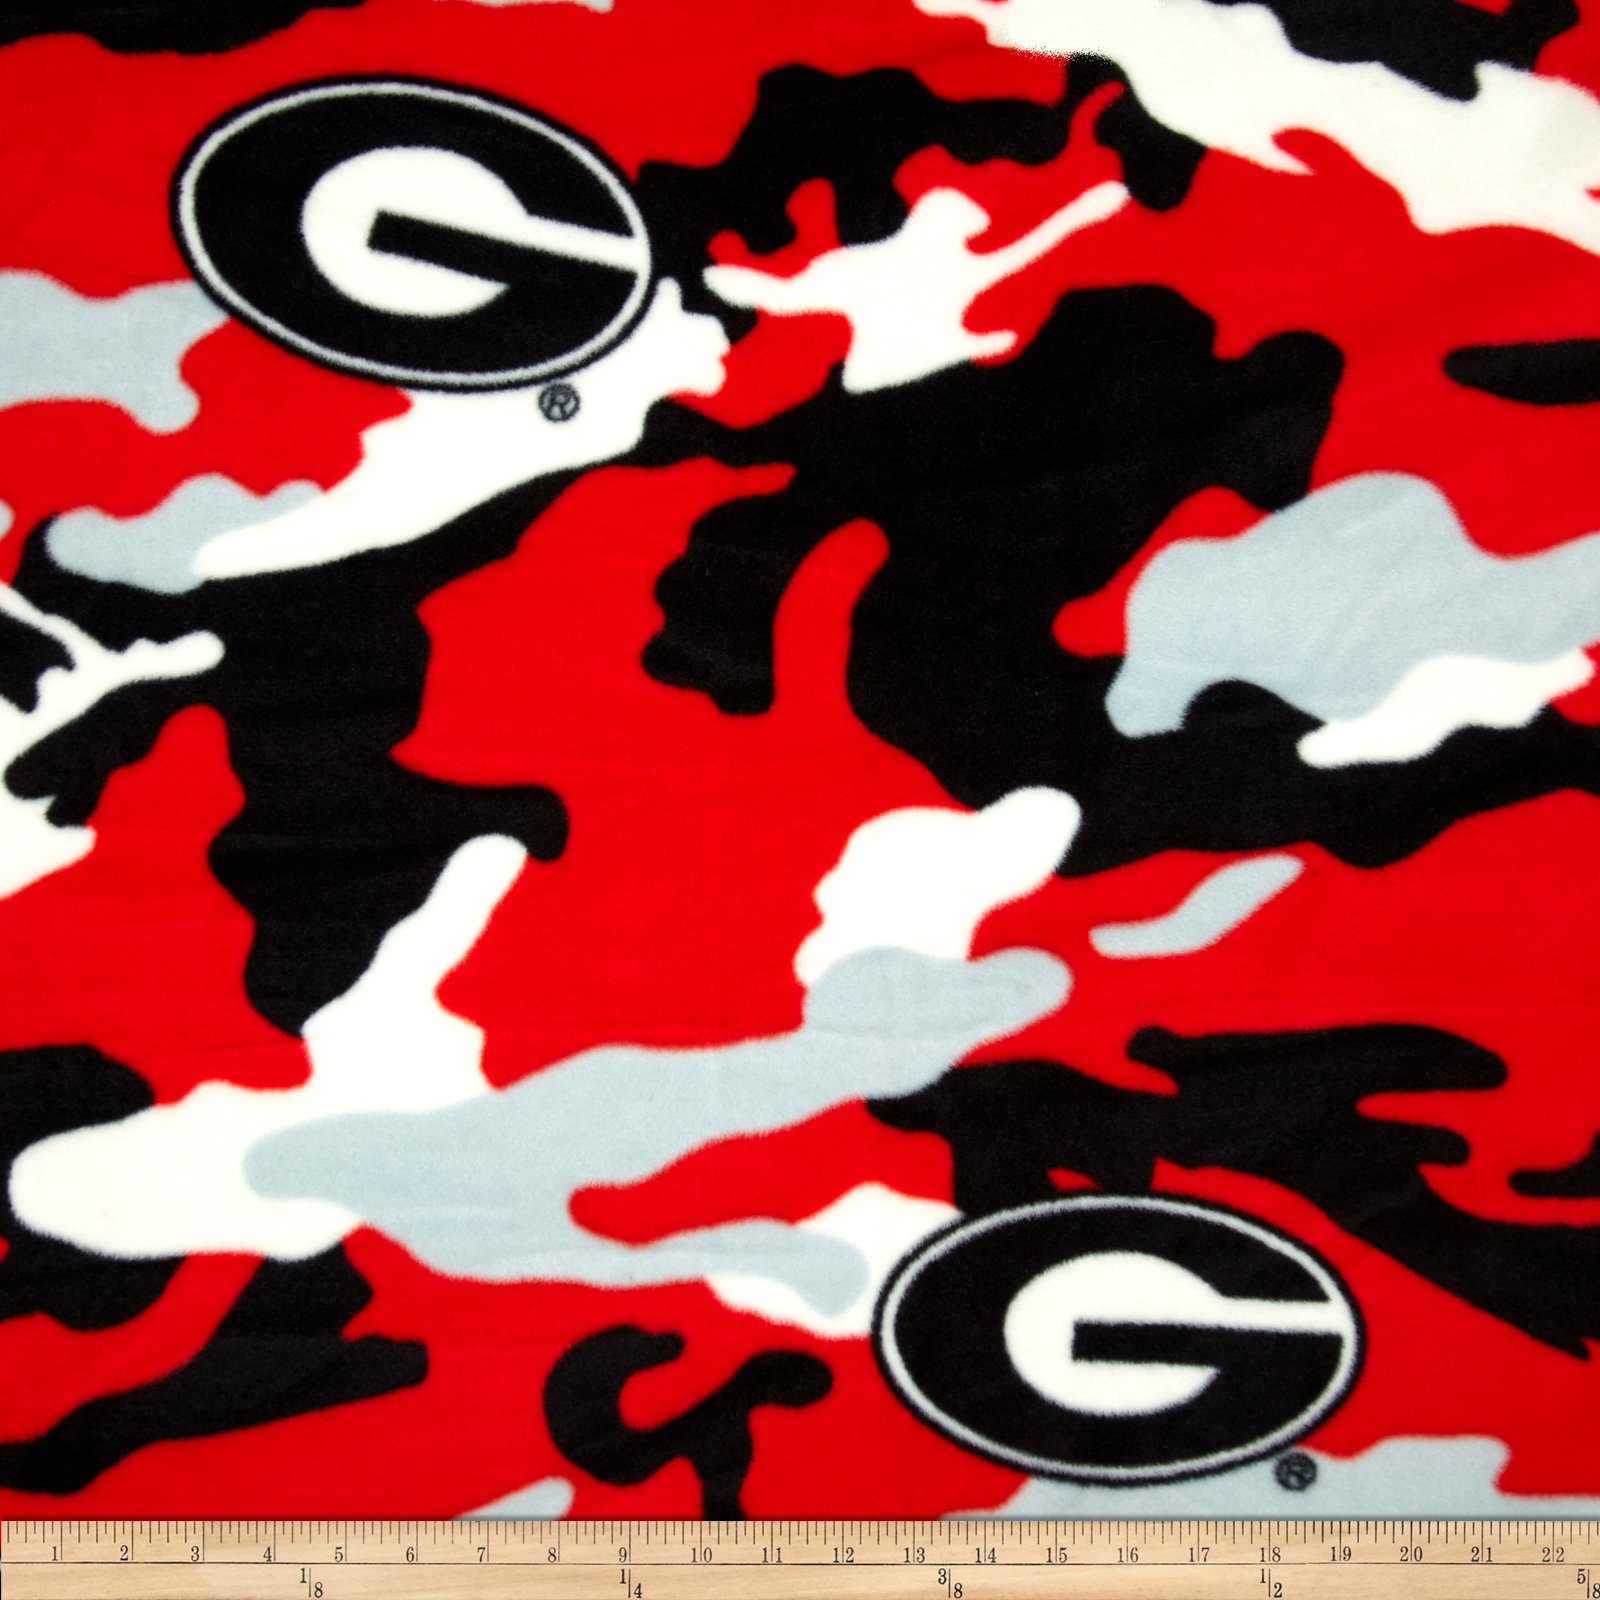 University of Georgia Fleece Camo Red Fabric